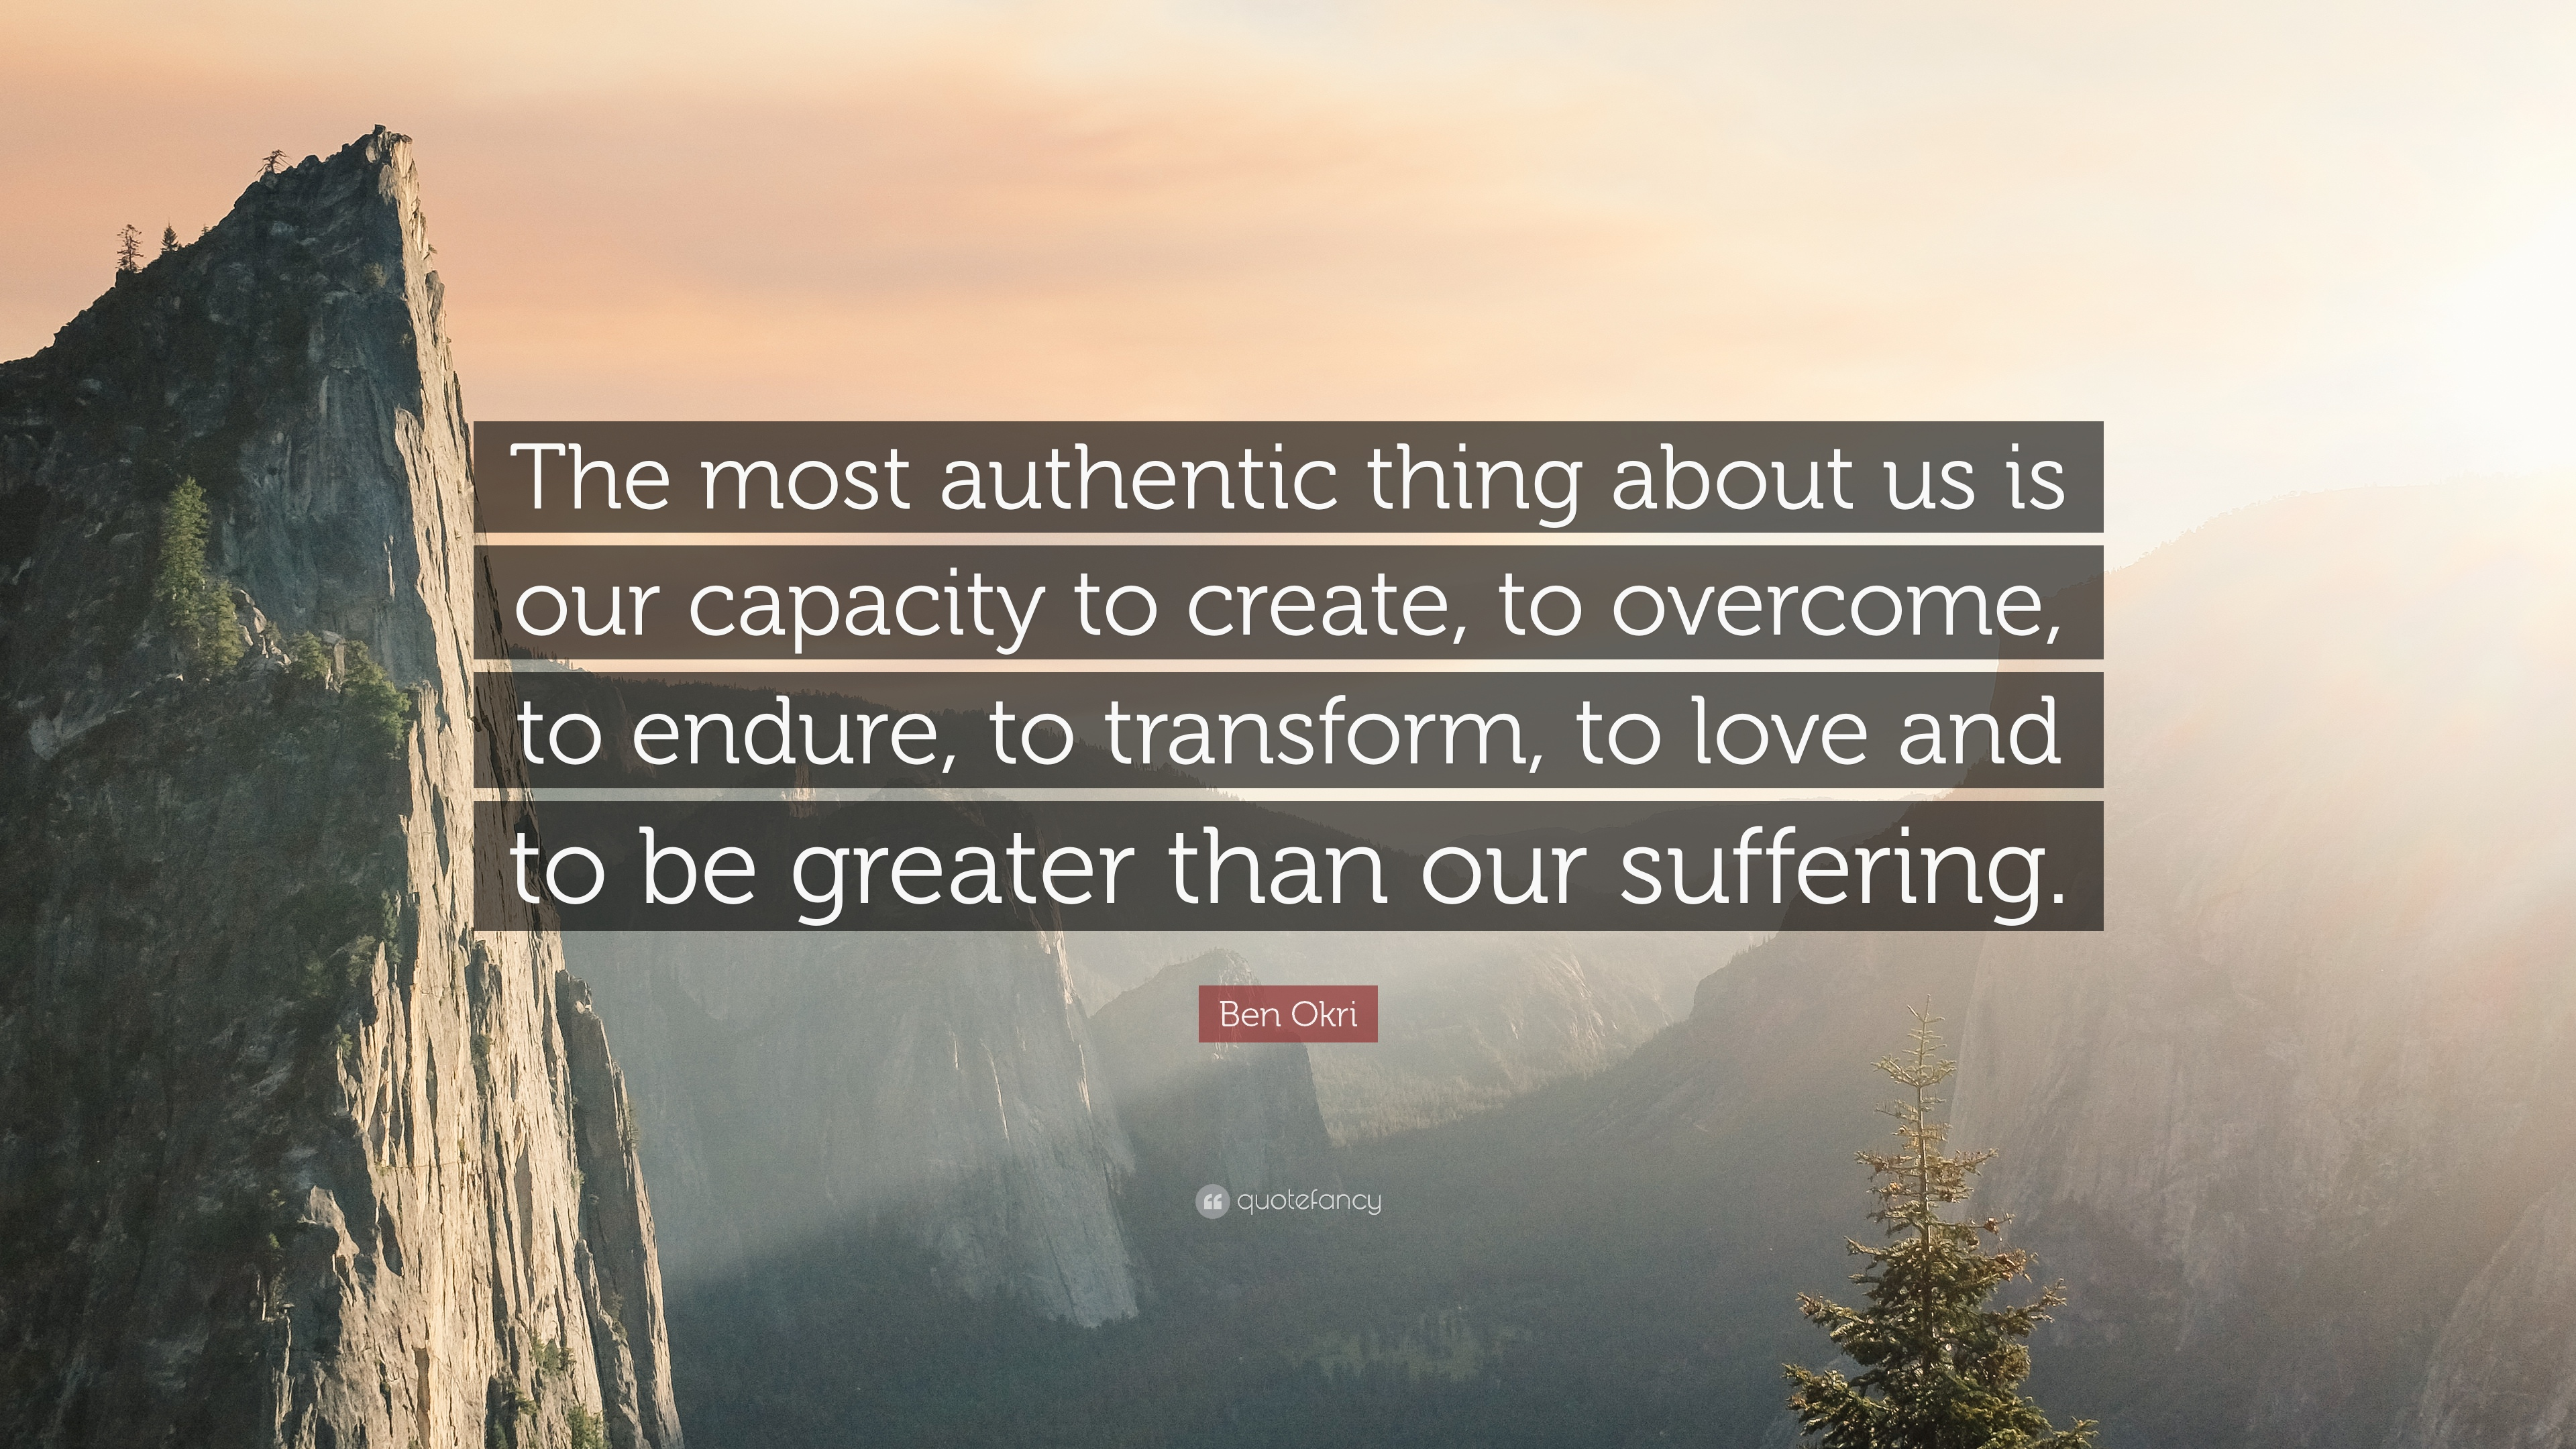 Ordinaire Ben Okri Quote: U201cThe Most Authentic Thing About Us Is Our Capacity To Create